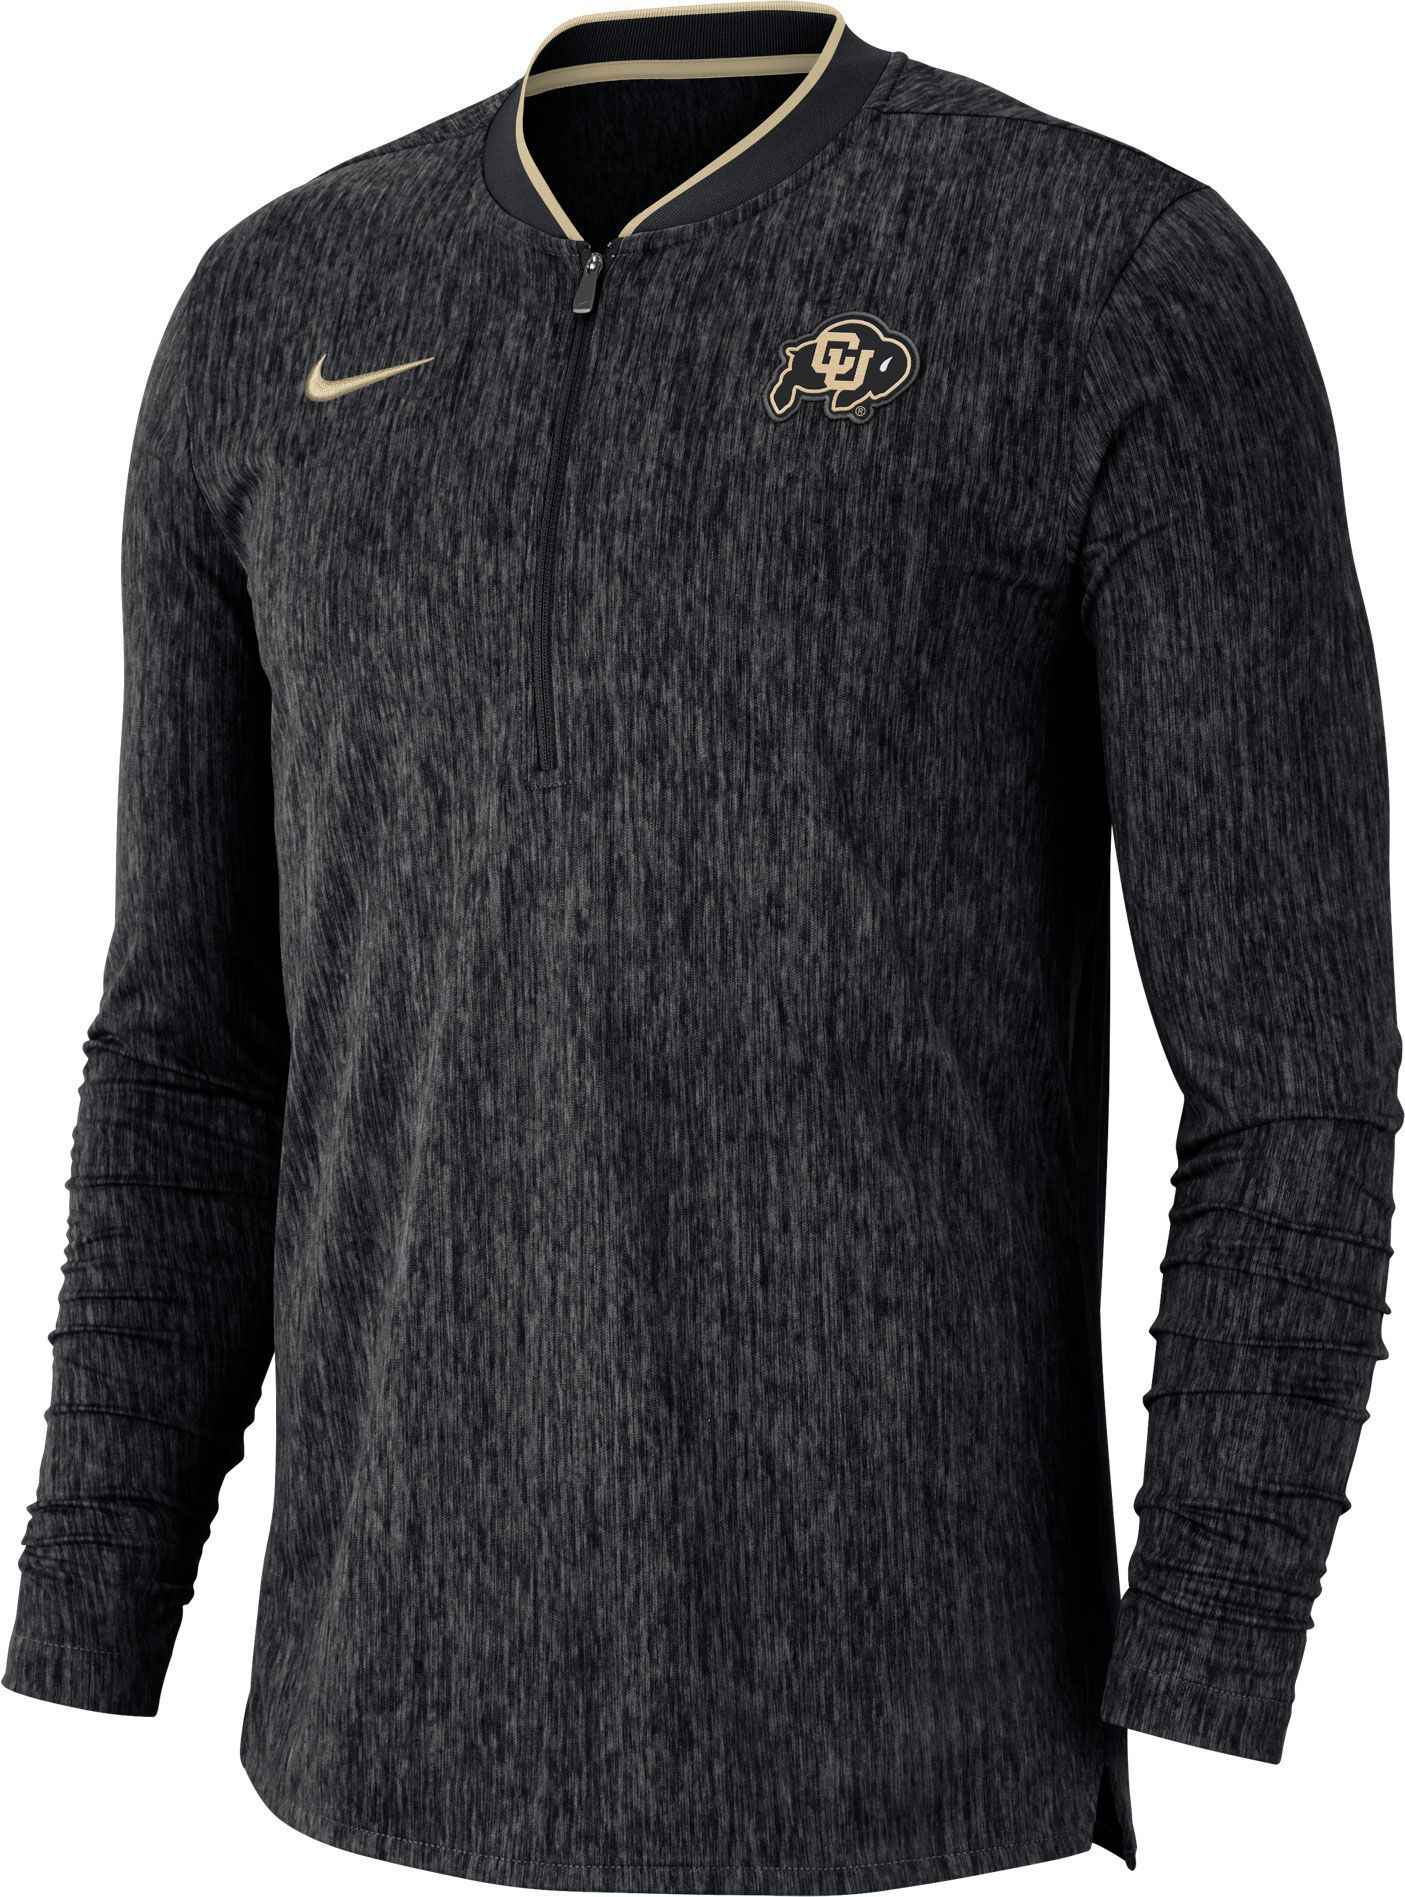 check out 59637 4a702 Nike Men's Colorado Buffaloes Coach Half-Zip Football ...